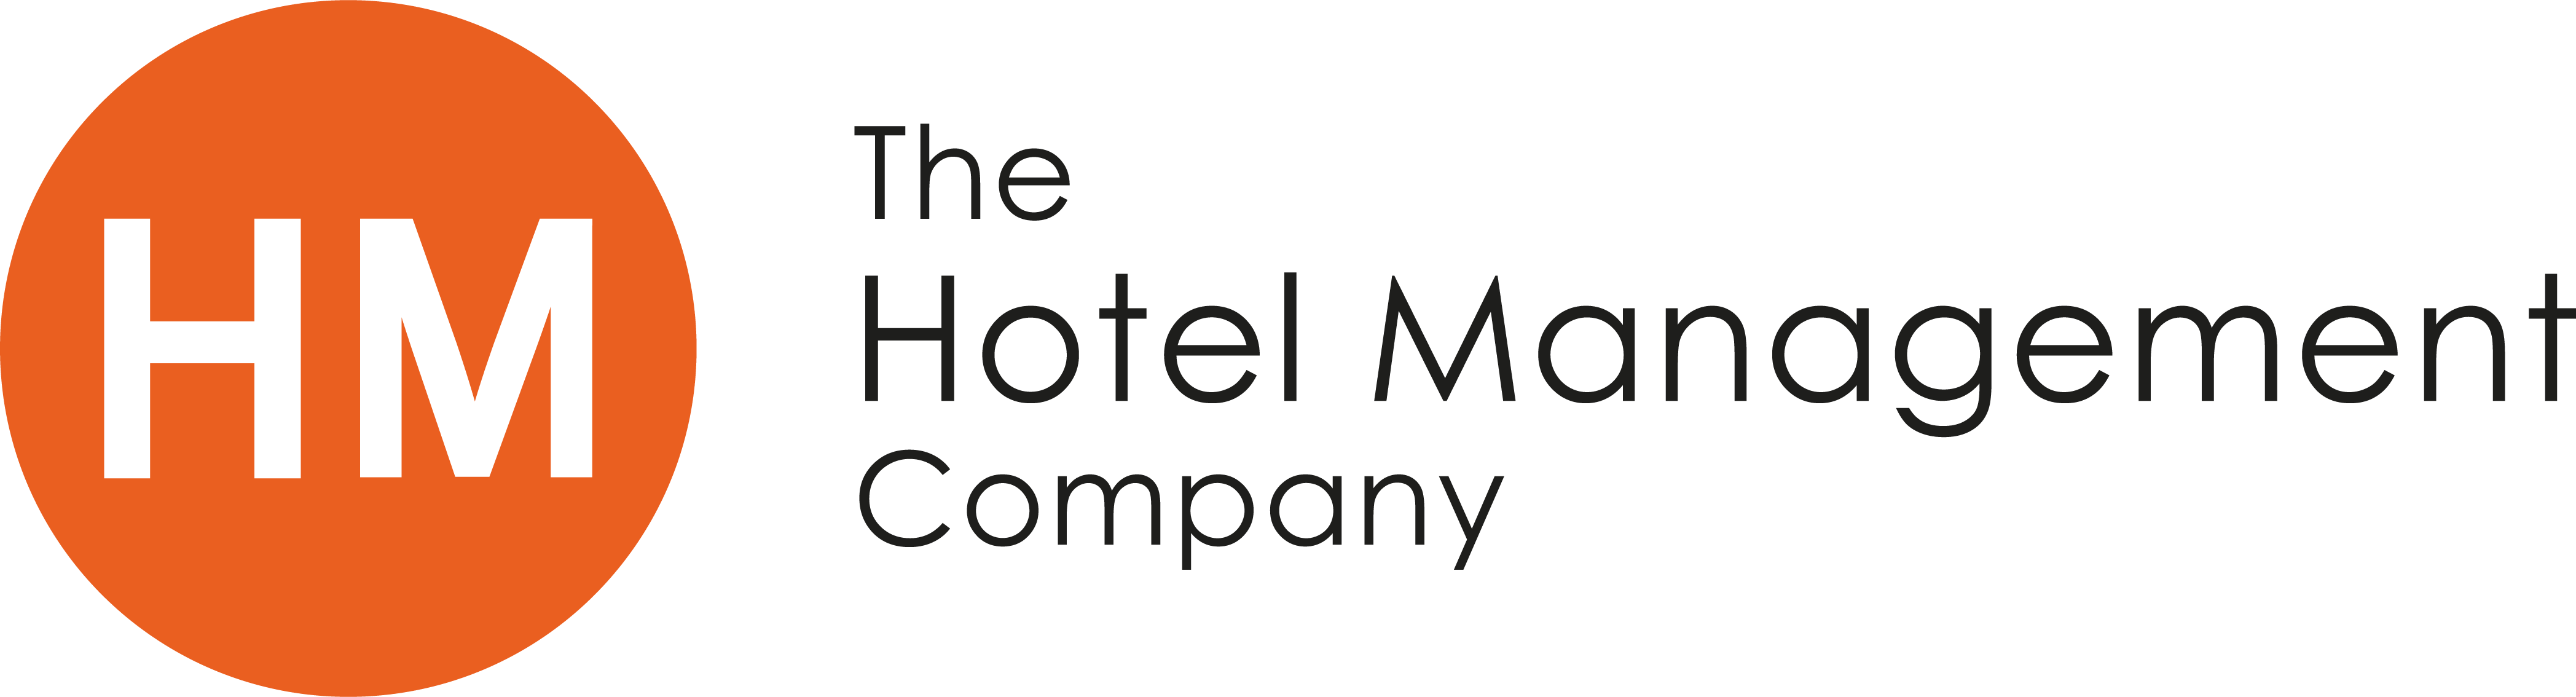 The Hotel Management Co.